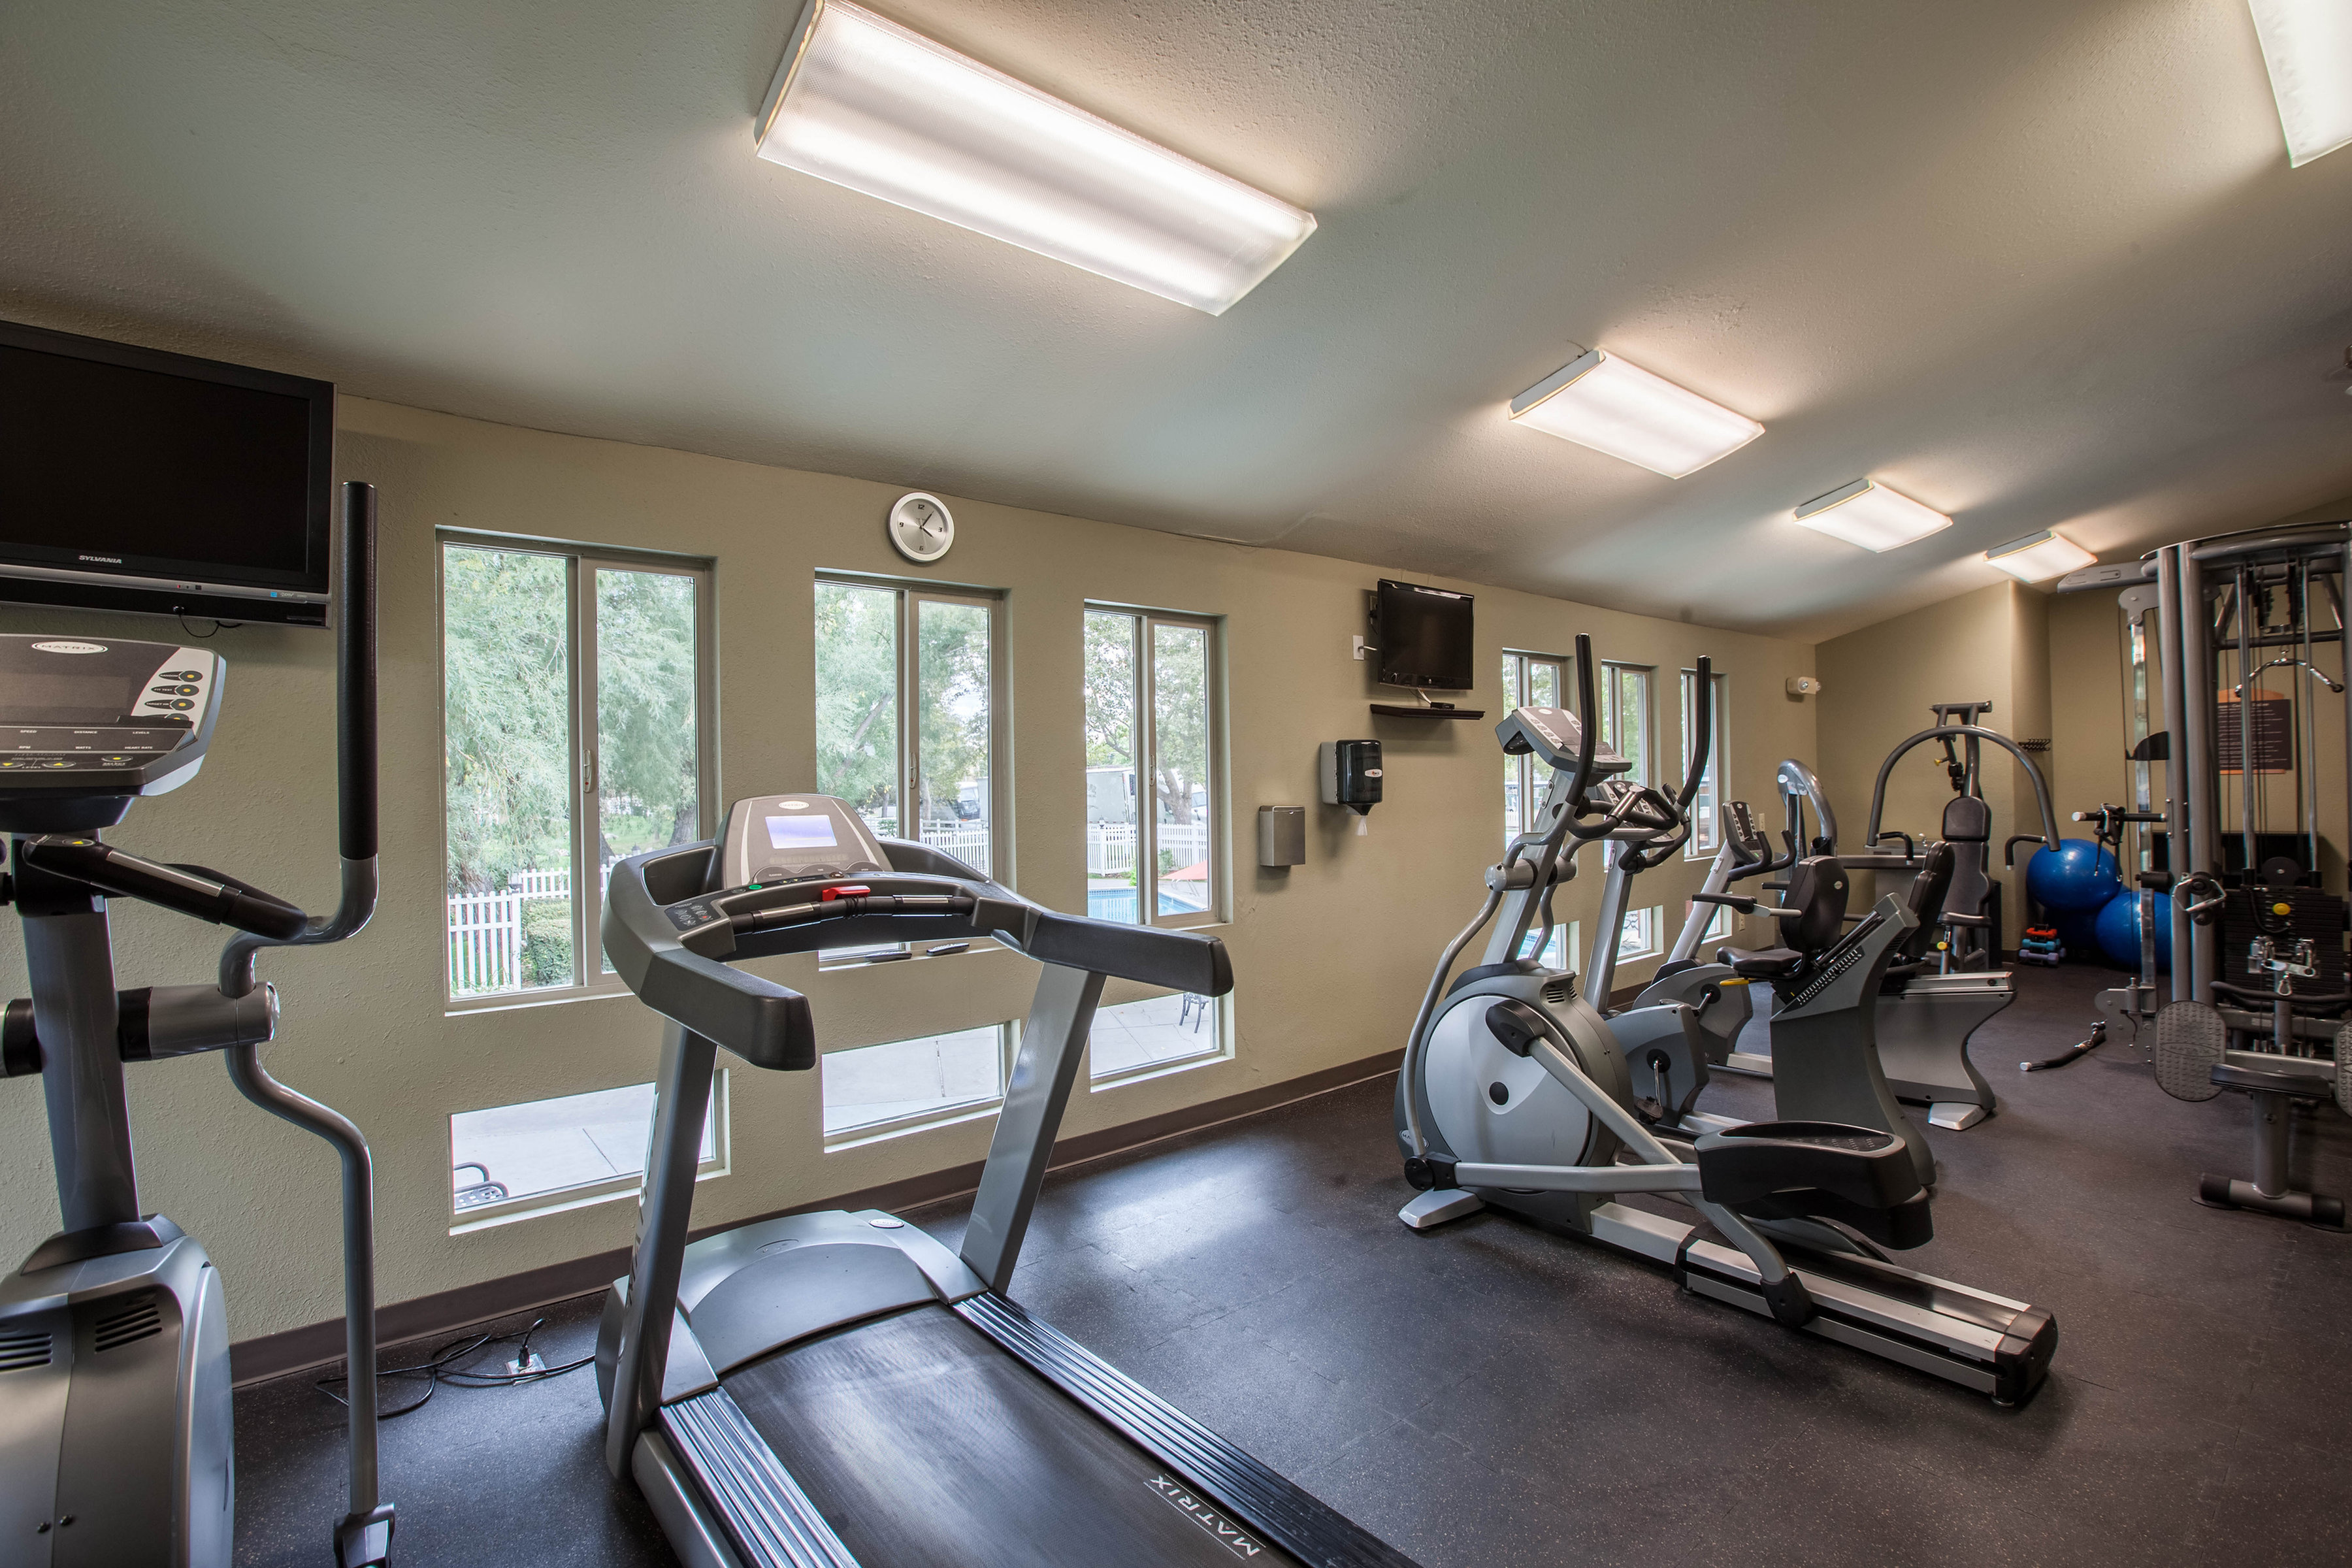 View of Fitness Center, Showing Cardio Machines, Cable Machines, and TVs at Fox Point in Old Farm Apartments